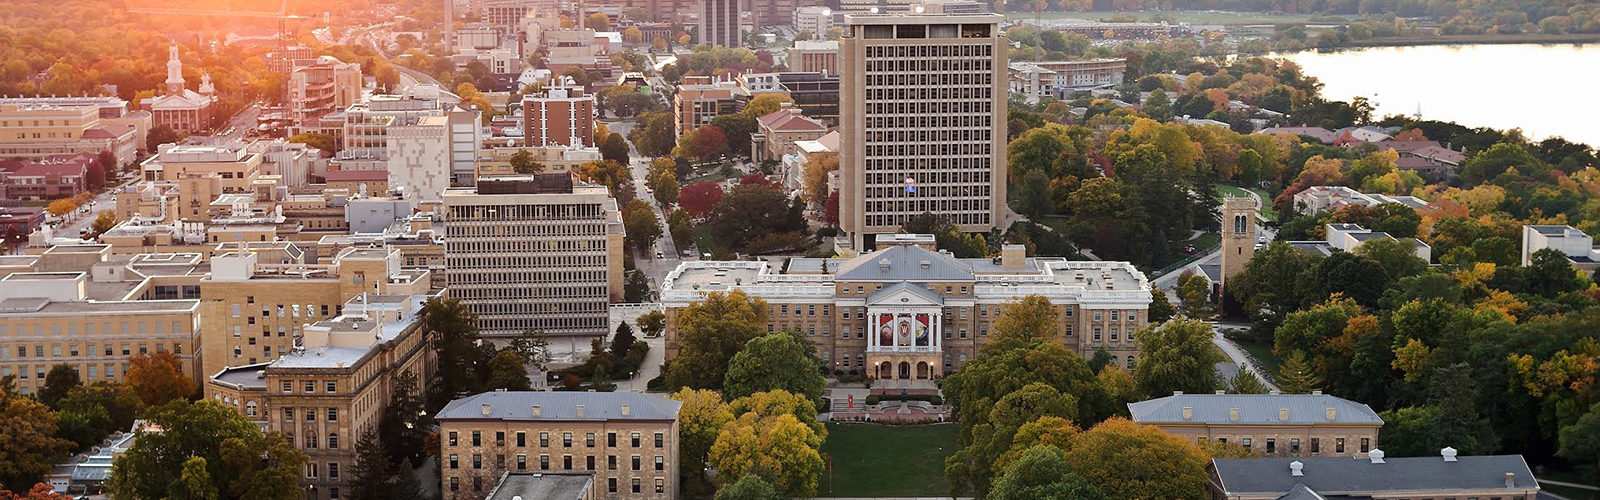 Ariel view of the UW-Madison campus